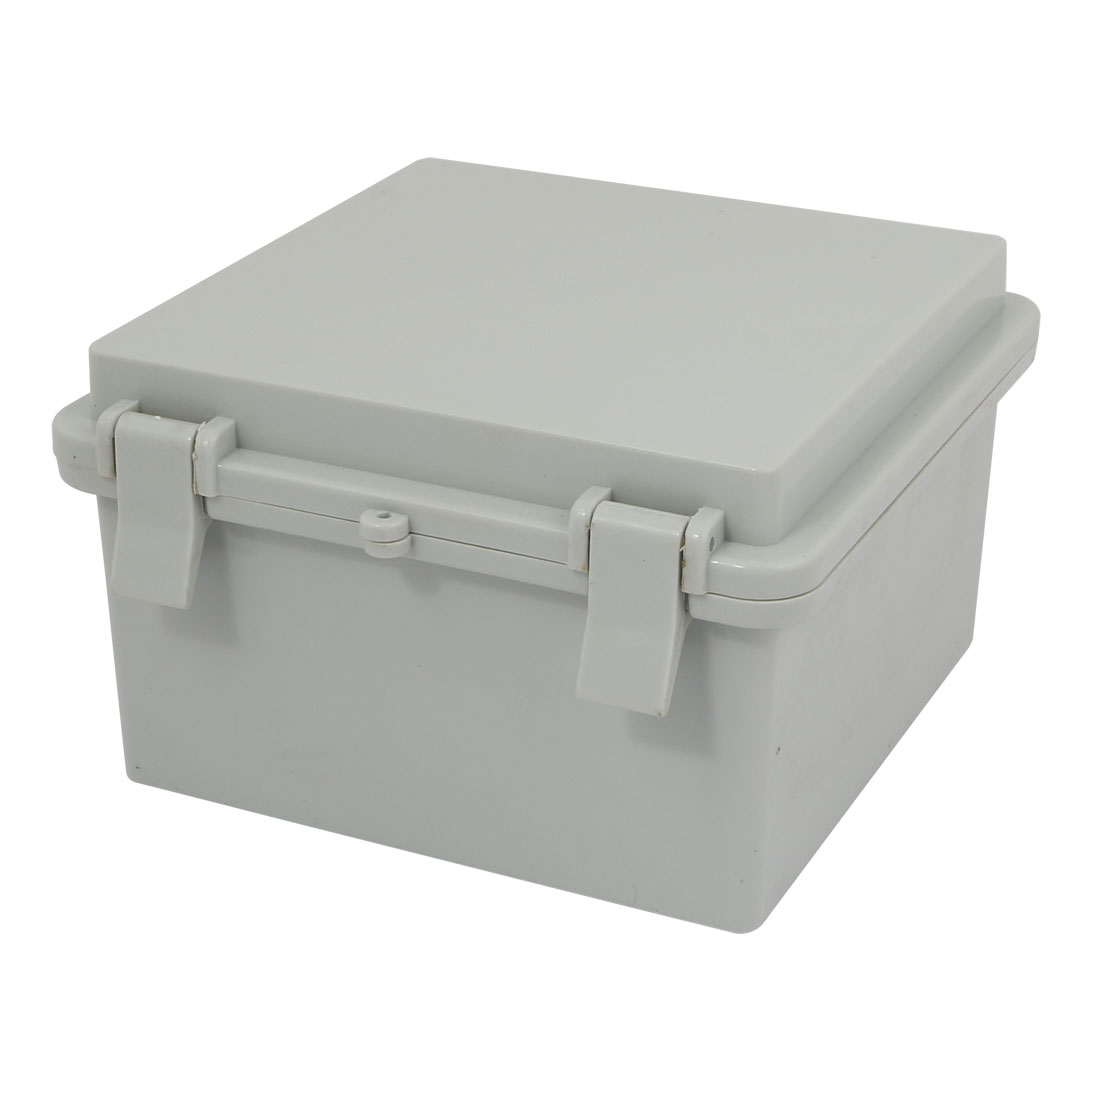 150mm x 150mm x 90mm Electronic ABS Plastic DIY Junction Box Enclosure Case Gray